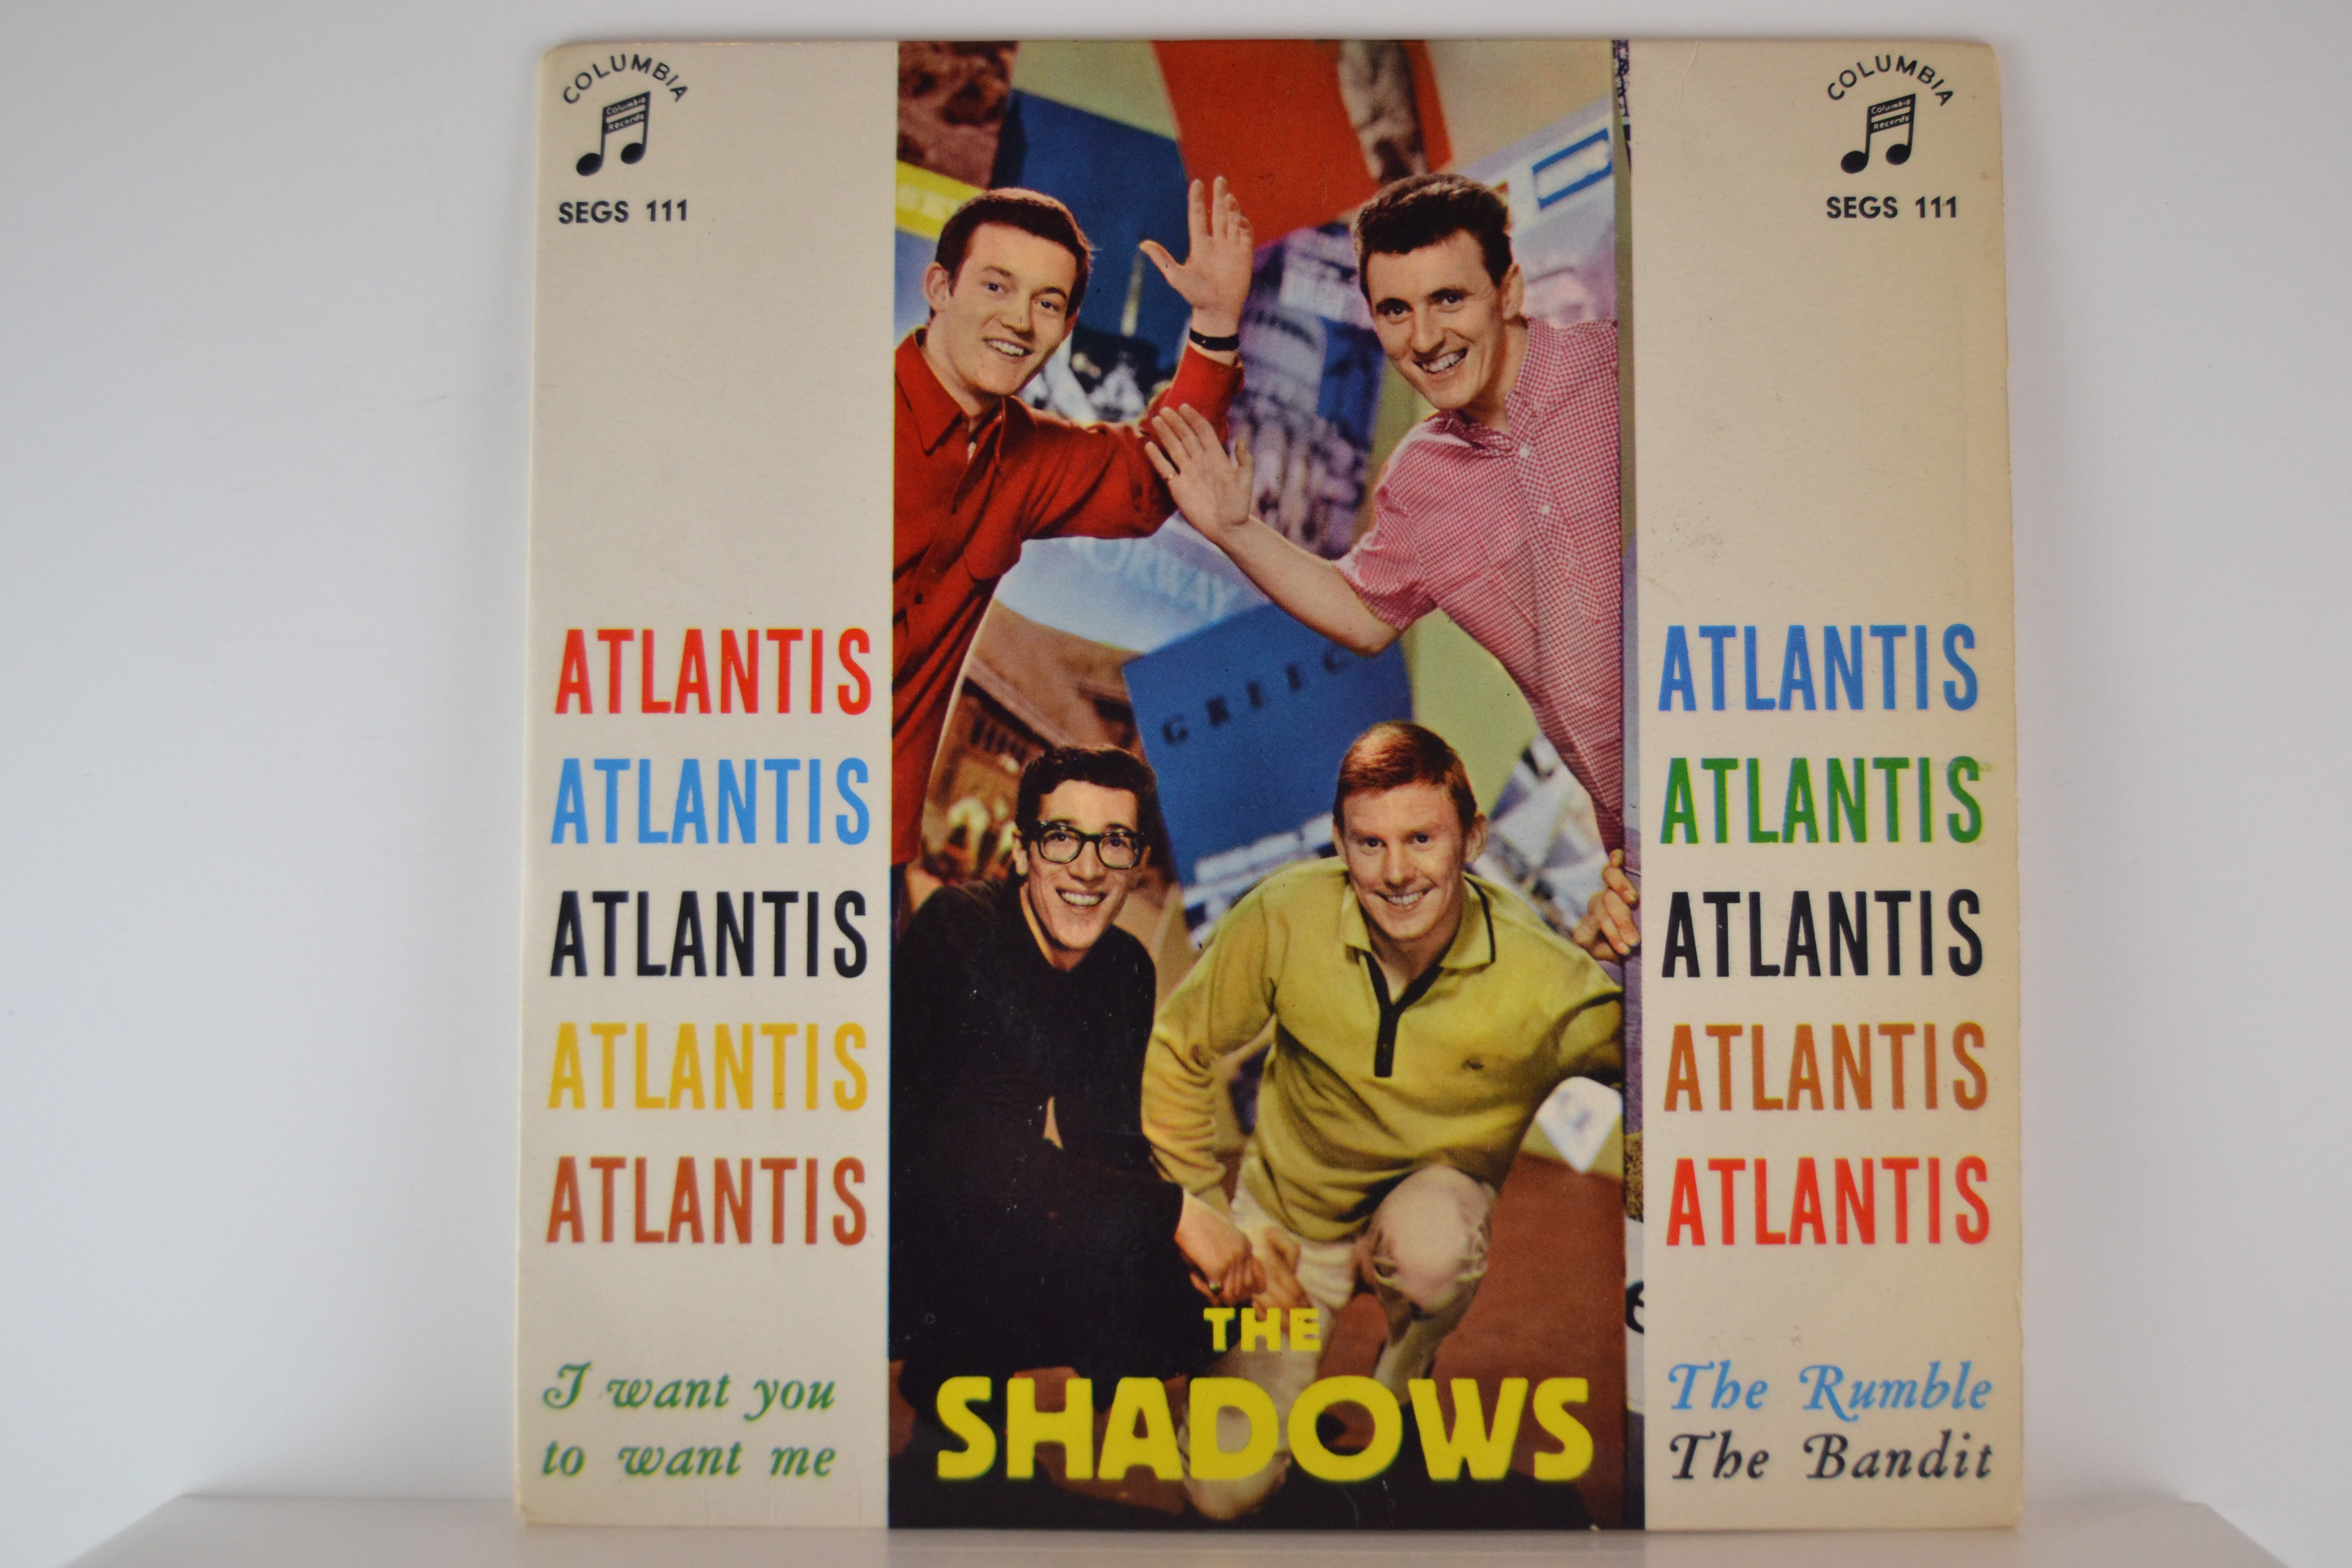 SHADOWS The : (EP) Atlantis / I want you to want me / The rumble / The bandit